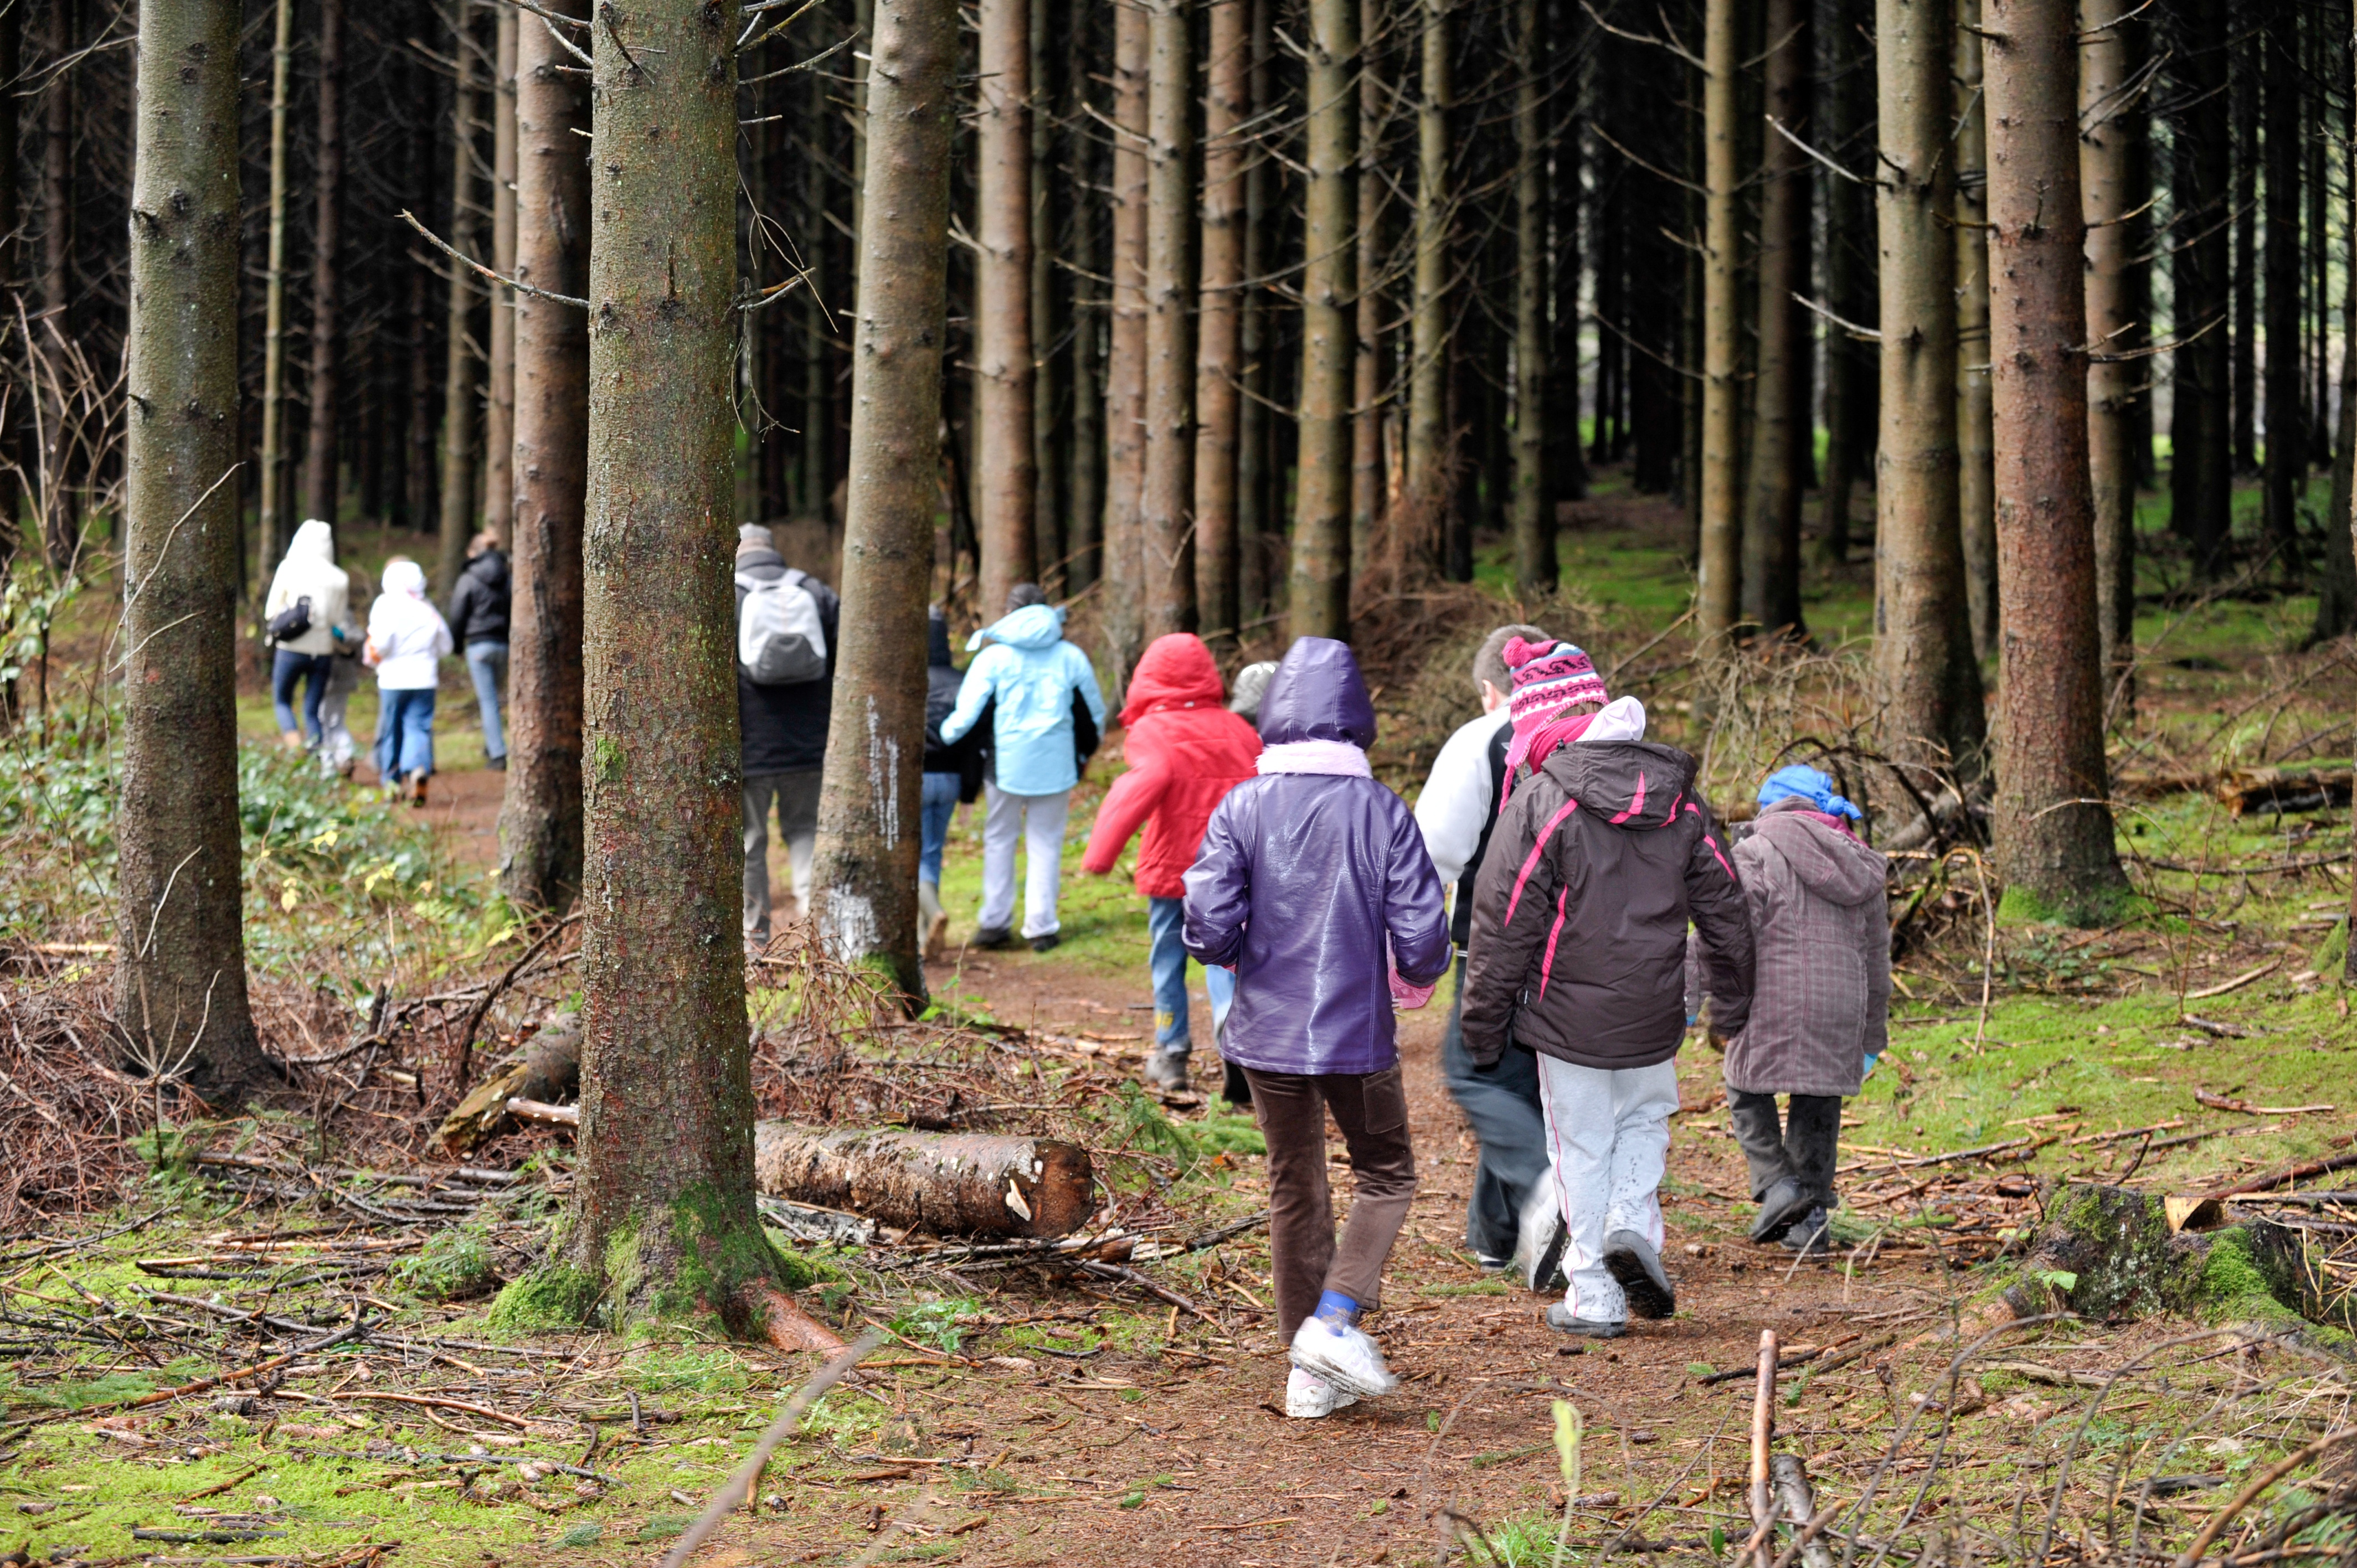 Students with jackets walking in woods